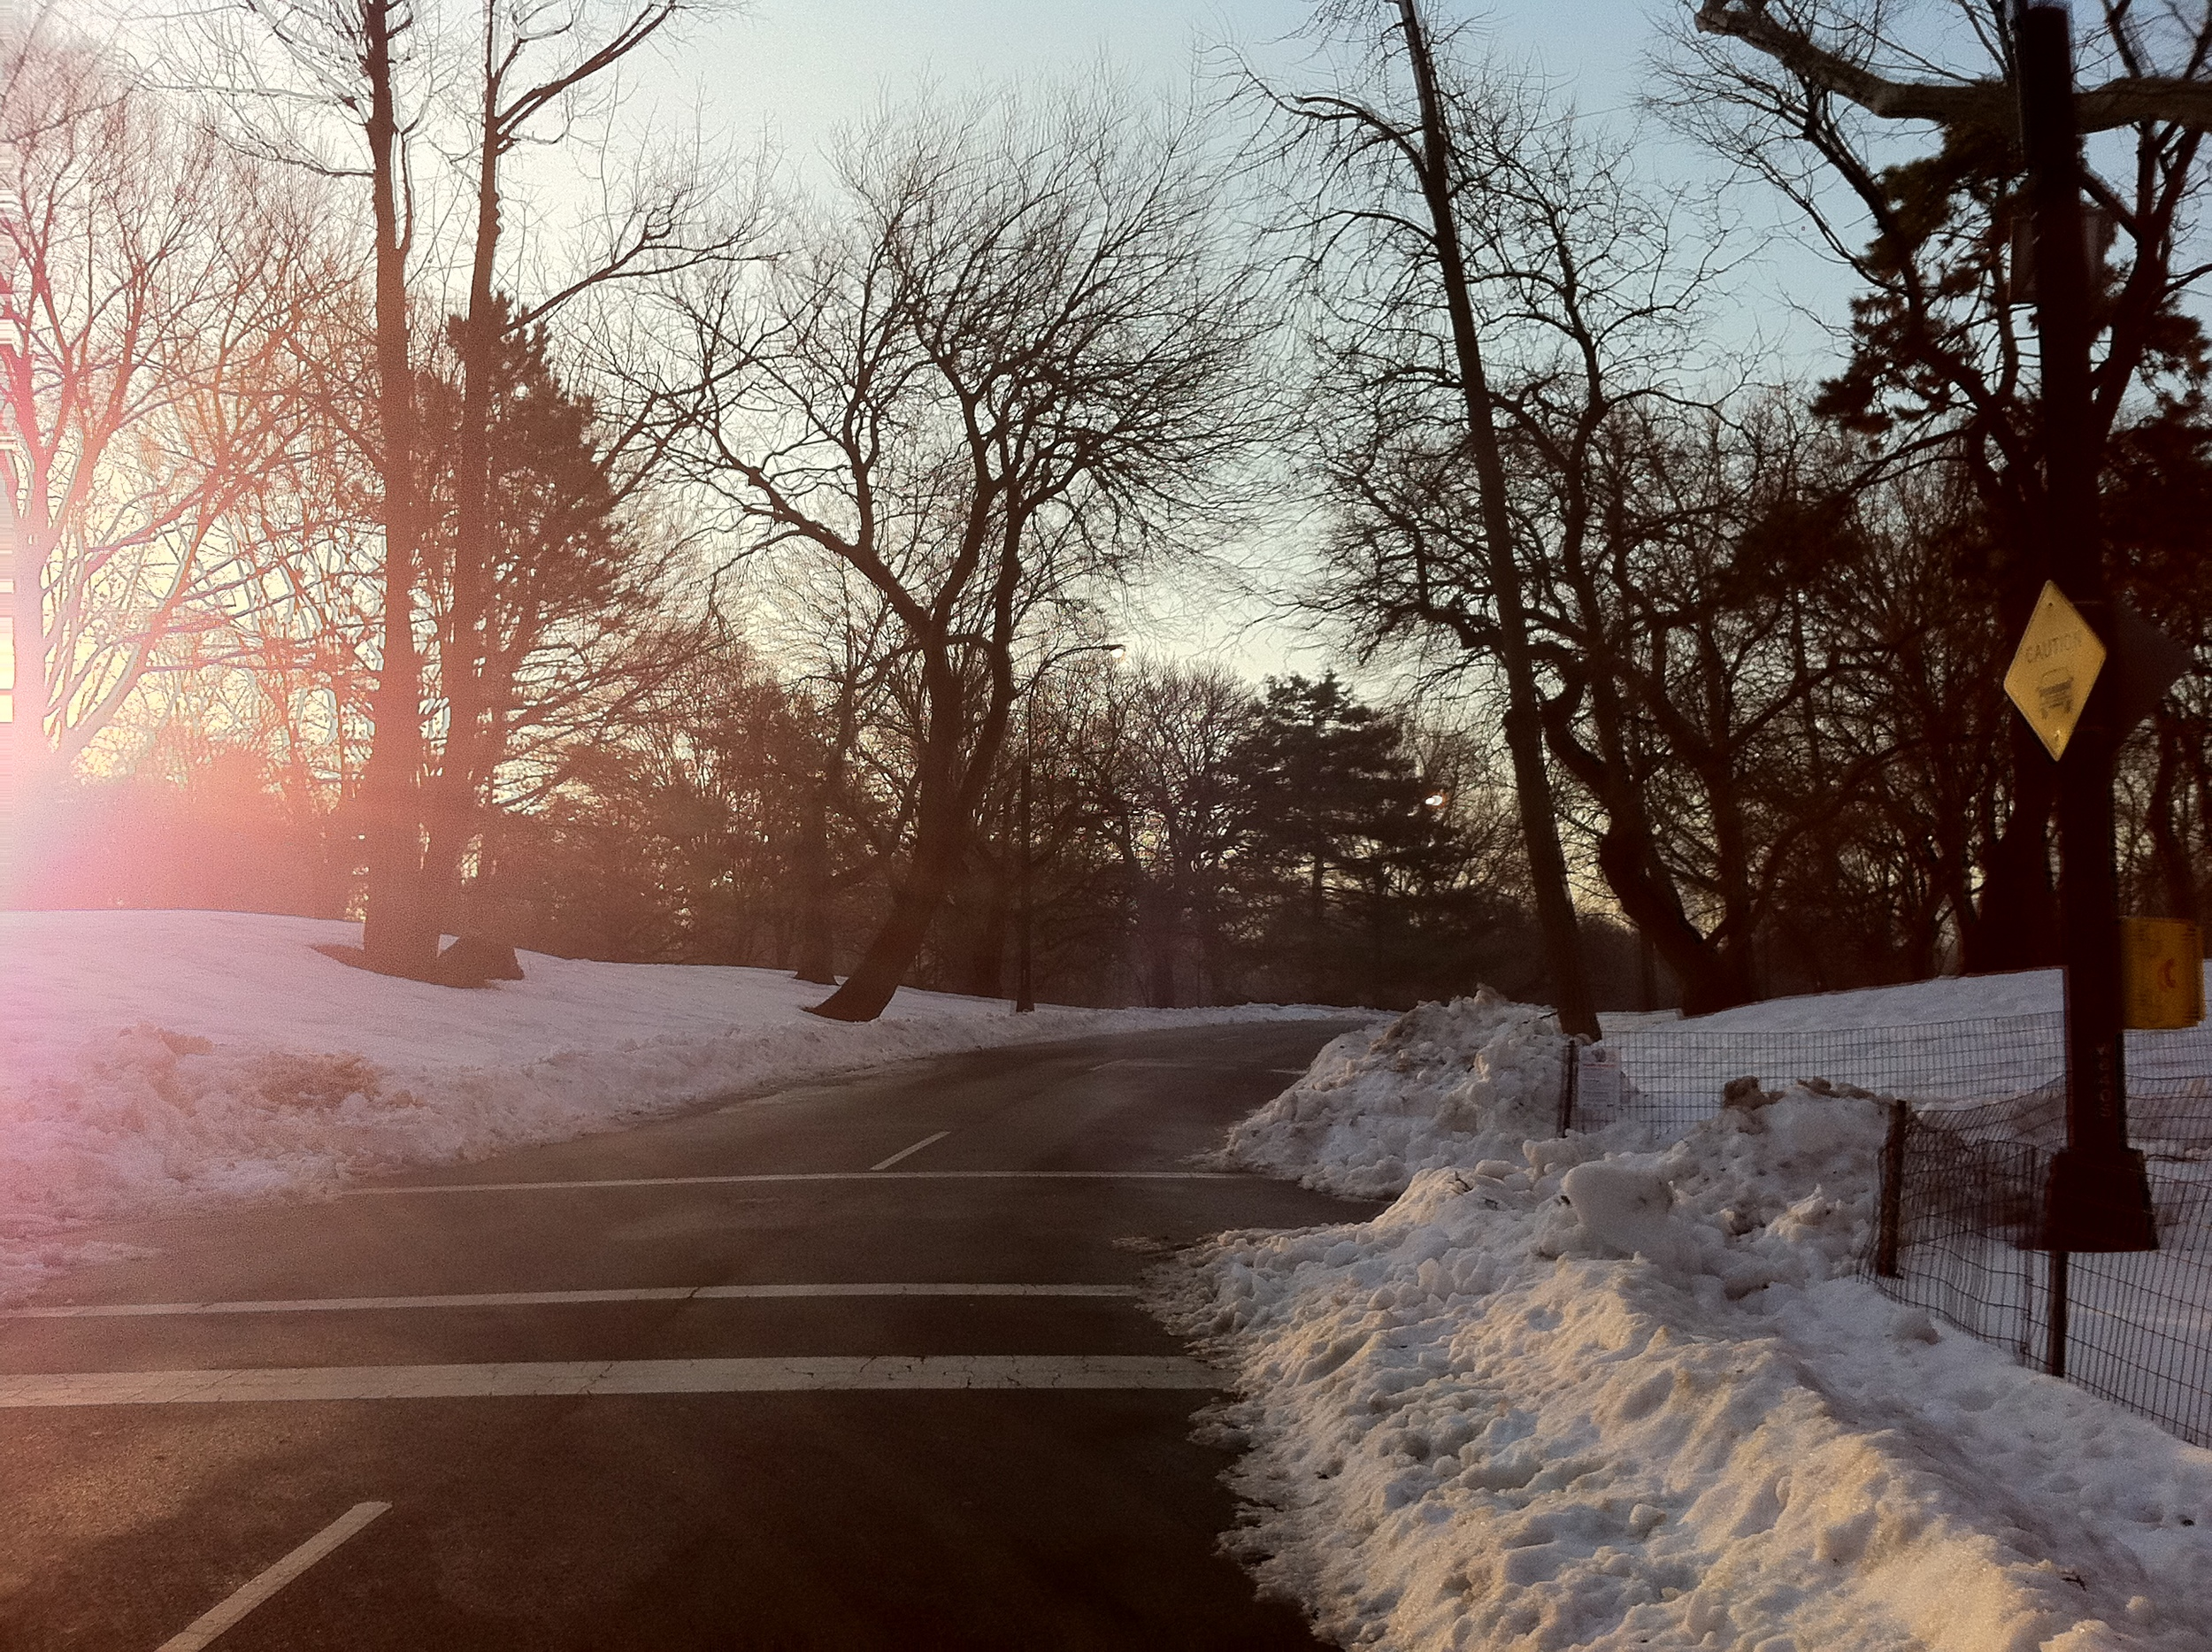 New Year's Day in New York - Central Park